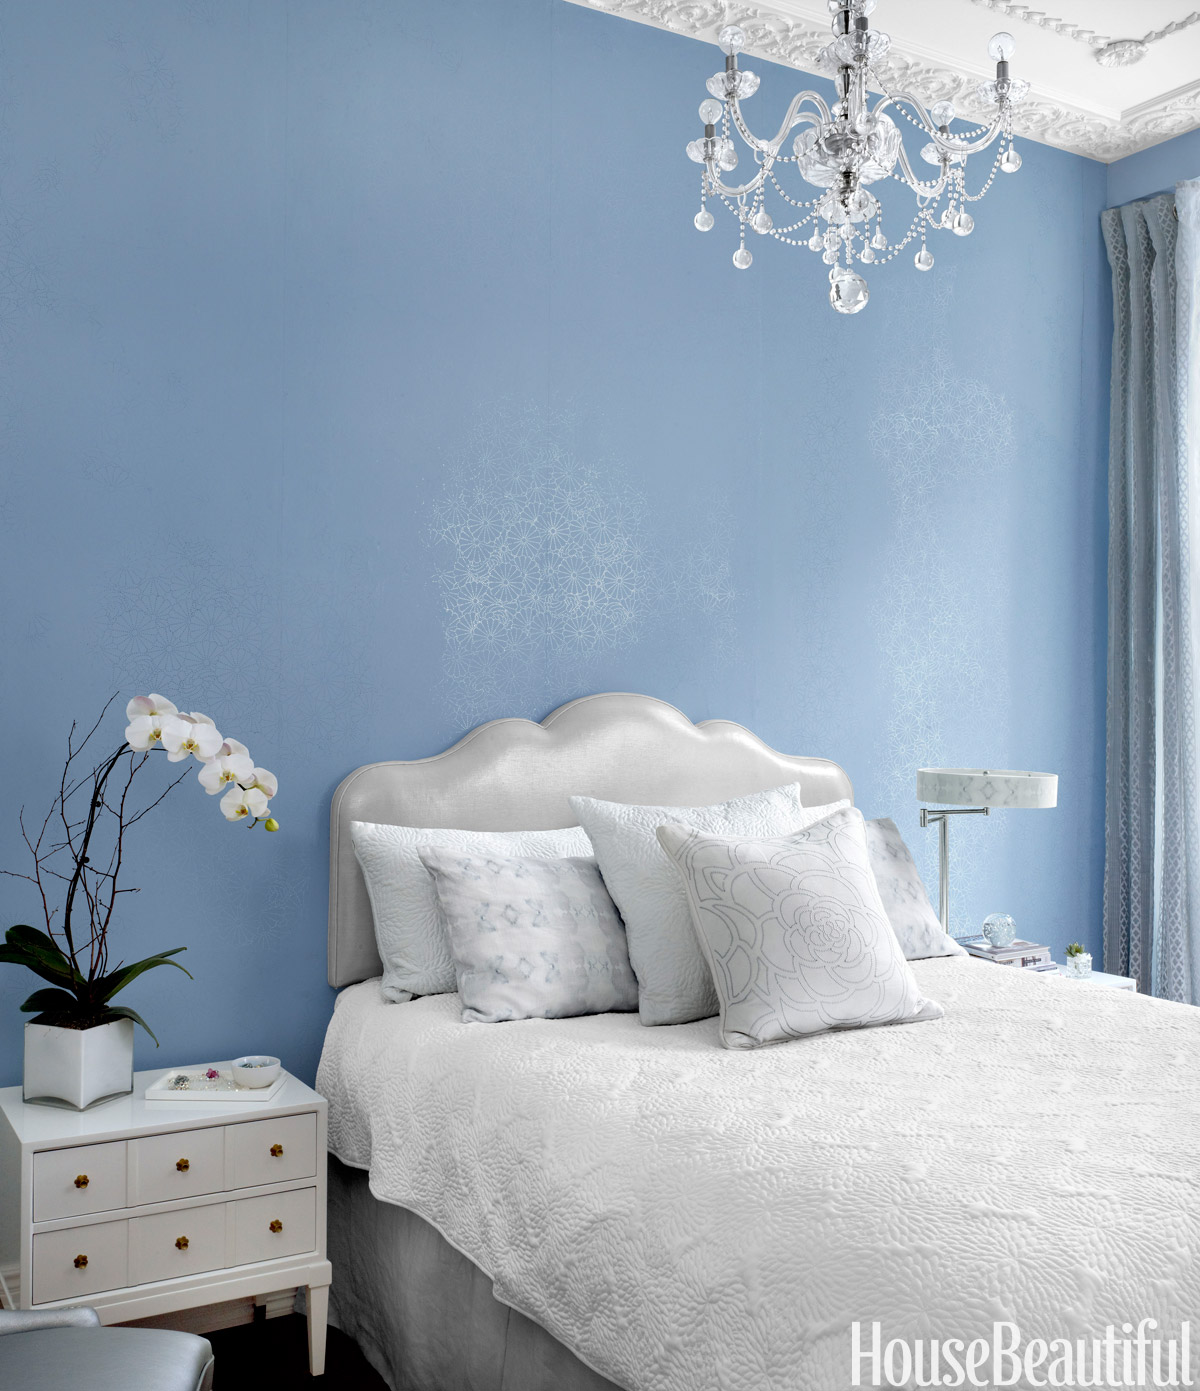 10 Small Bedroom Decorating Ideas Design Tips For Tiny